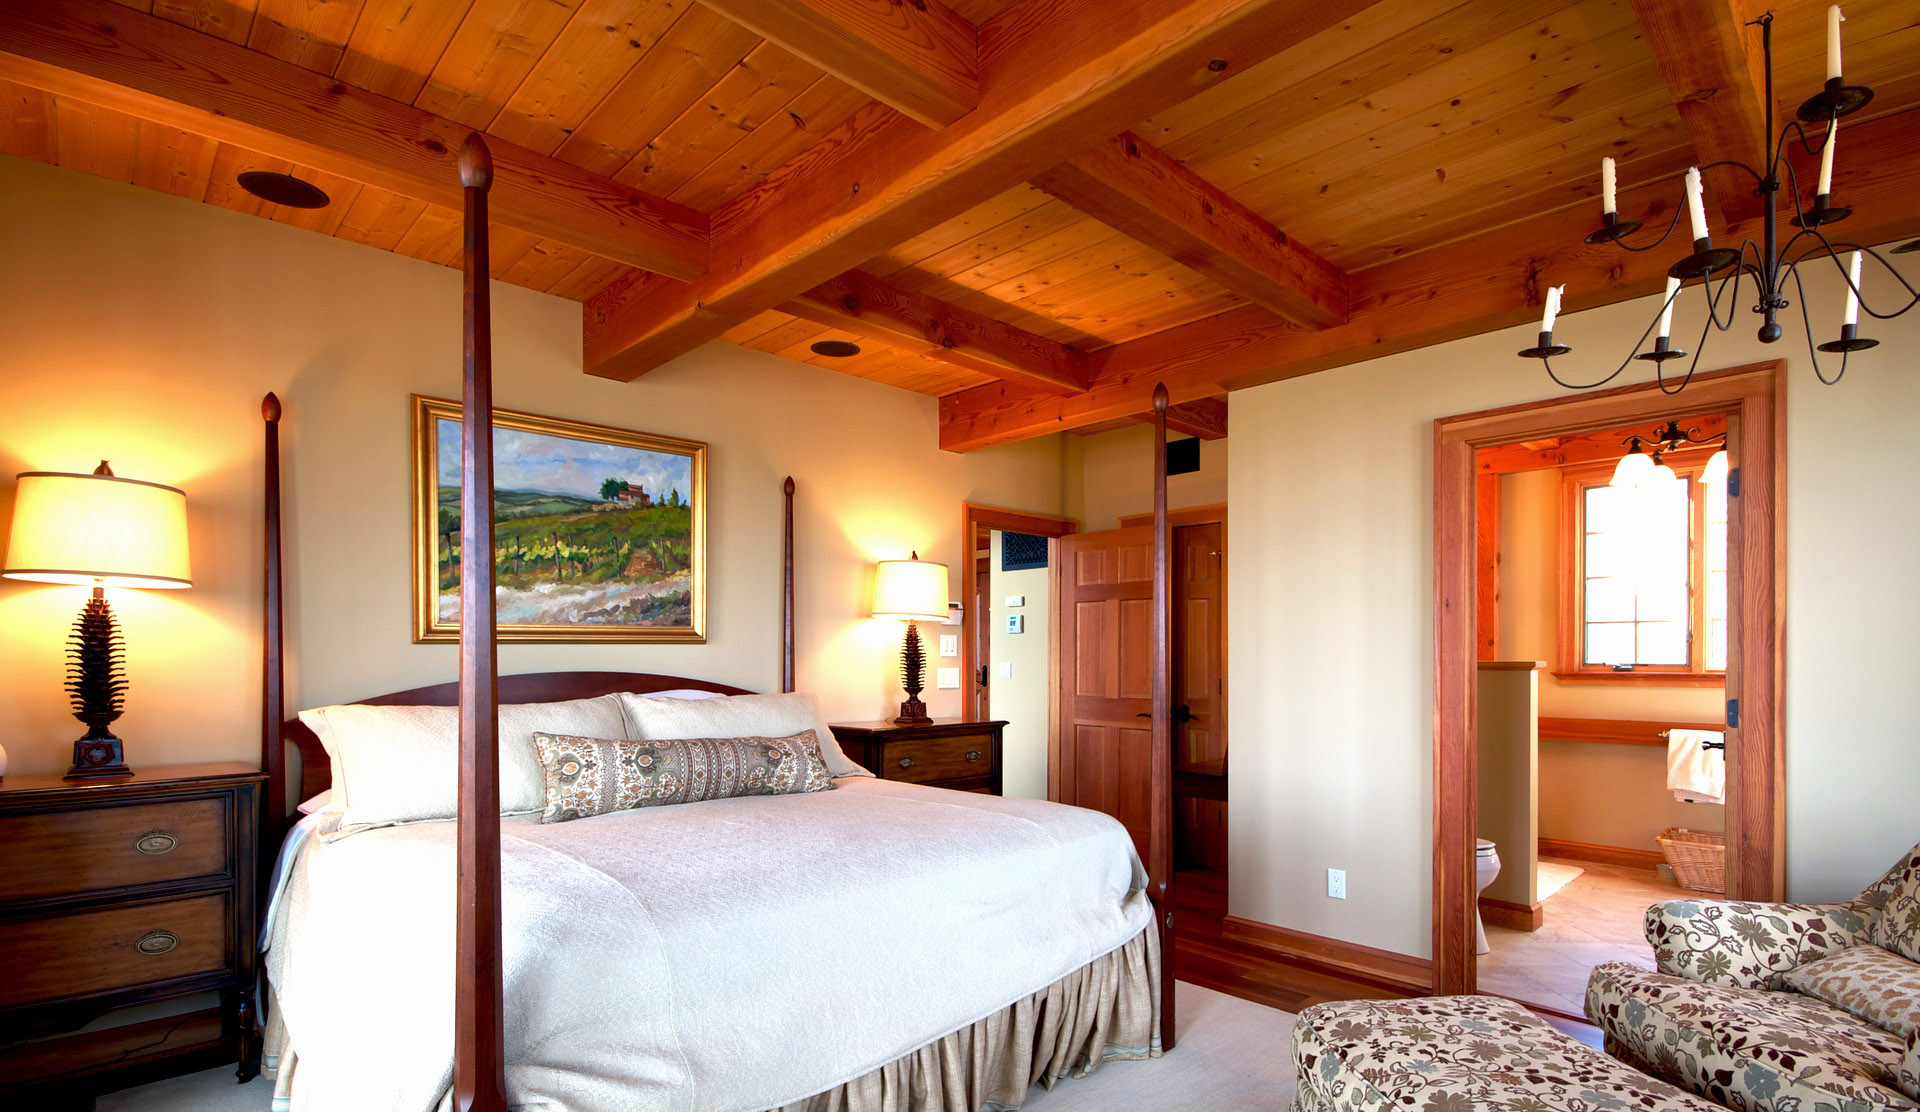 bedroom-ceiling-design-with-wood-bedroom-ceiling-ideas-in-traditional-bedroom-design-decorated-hanging-lamps